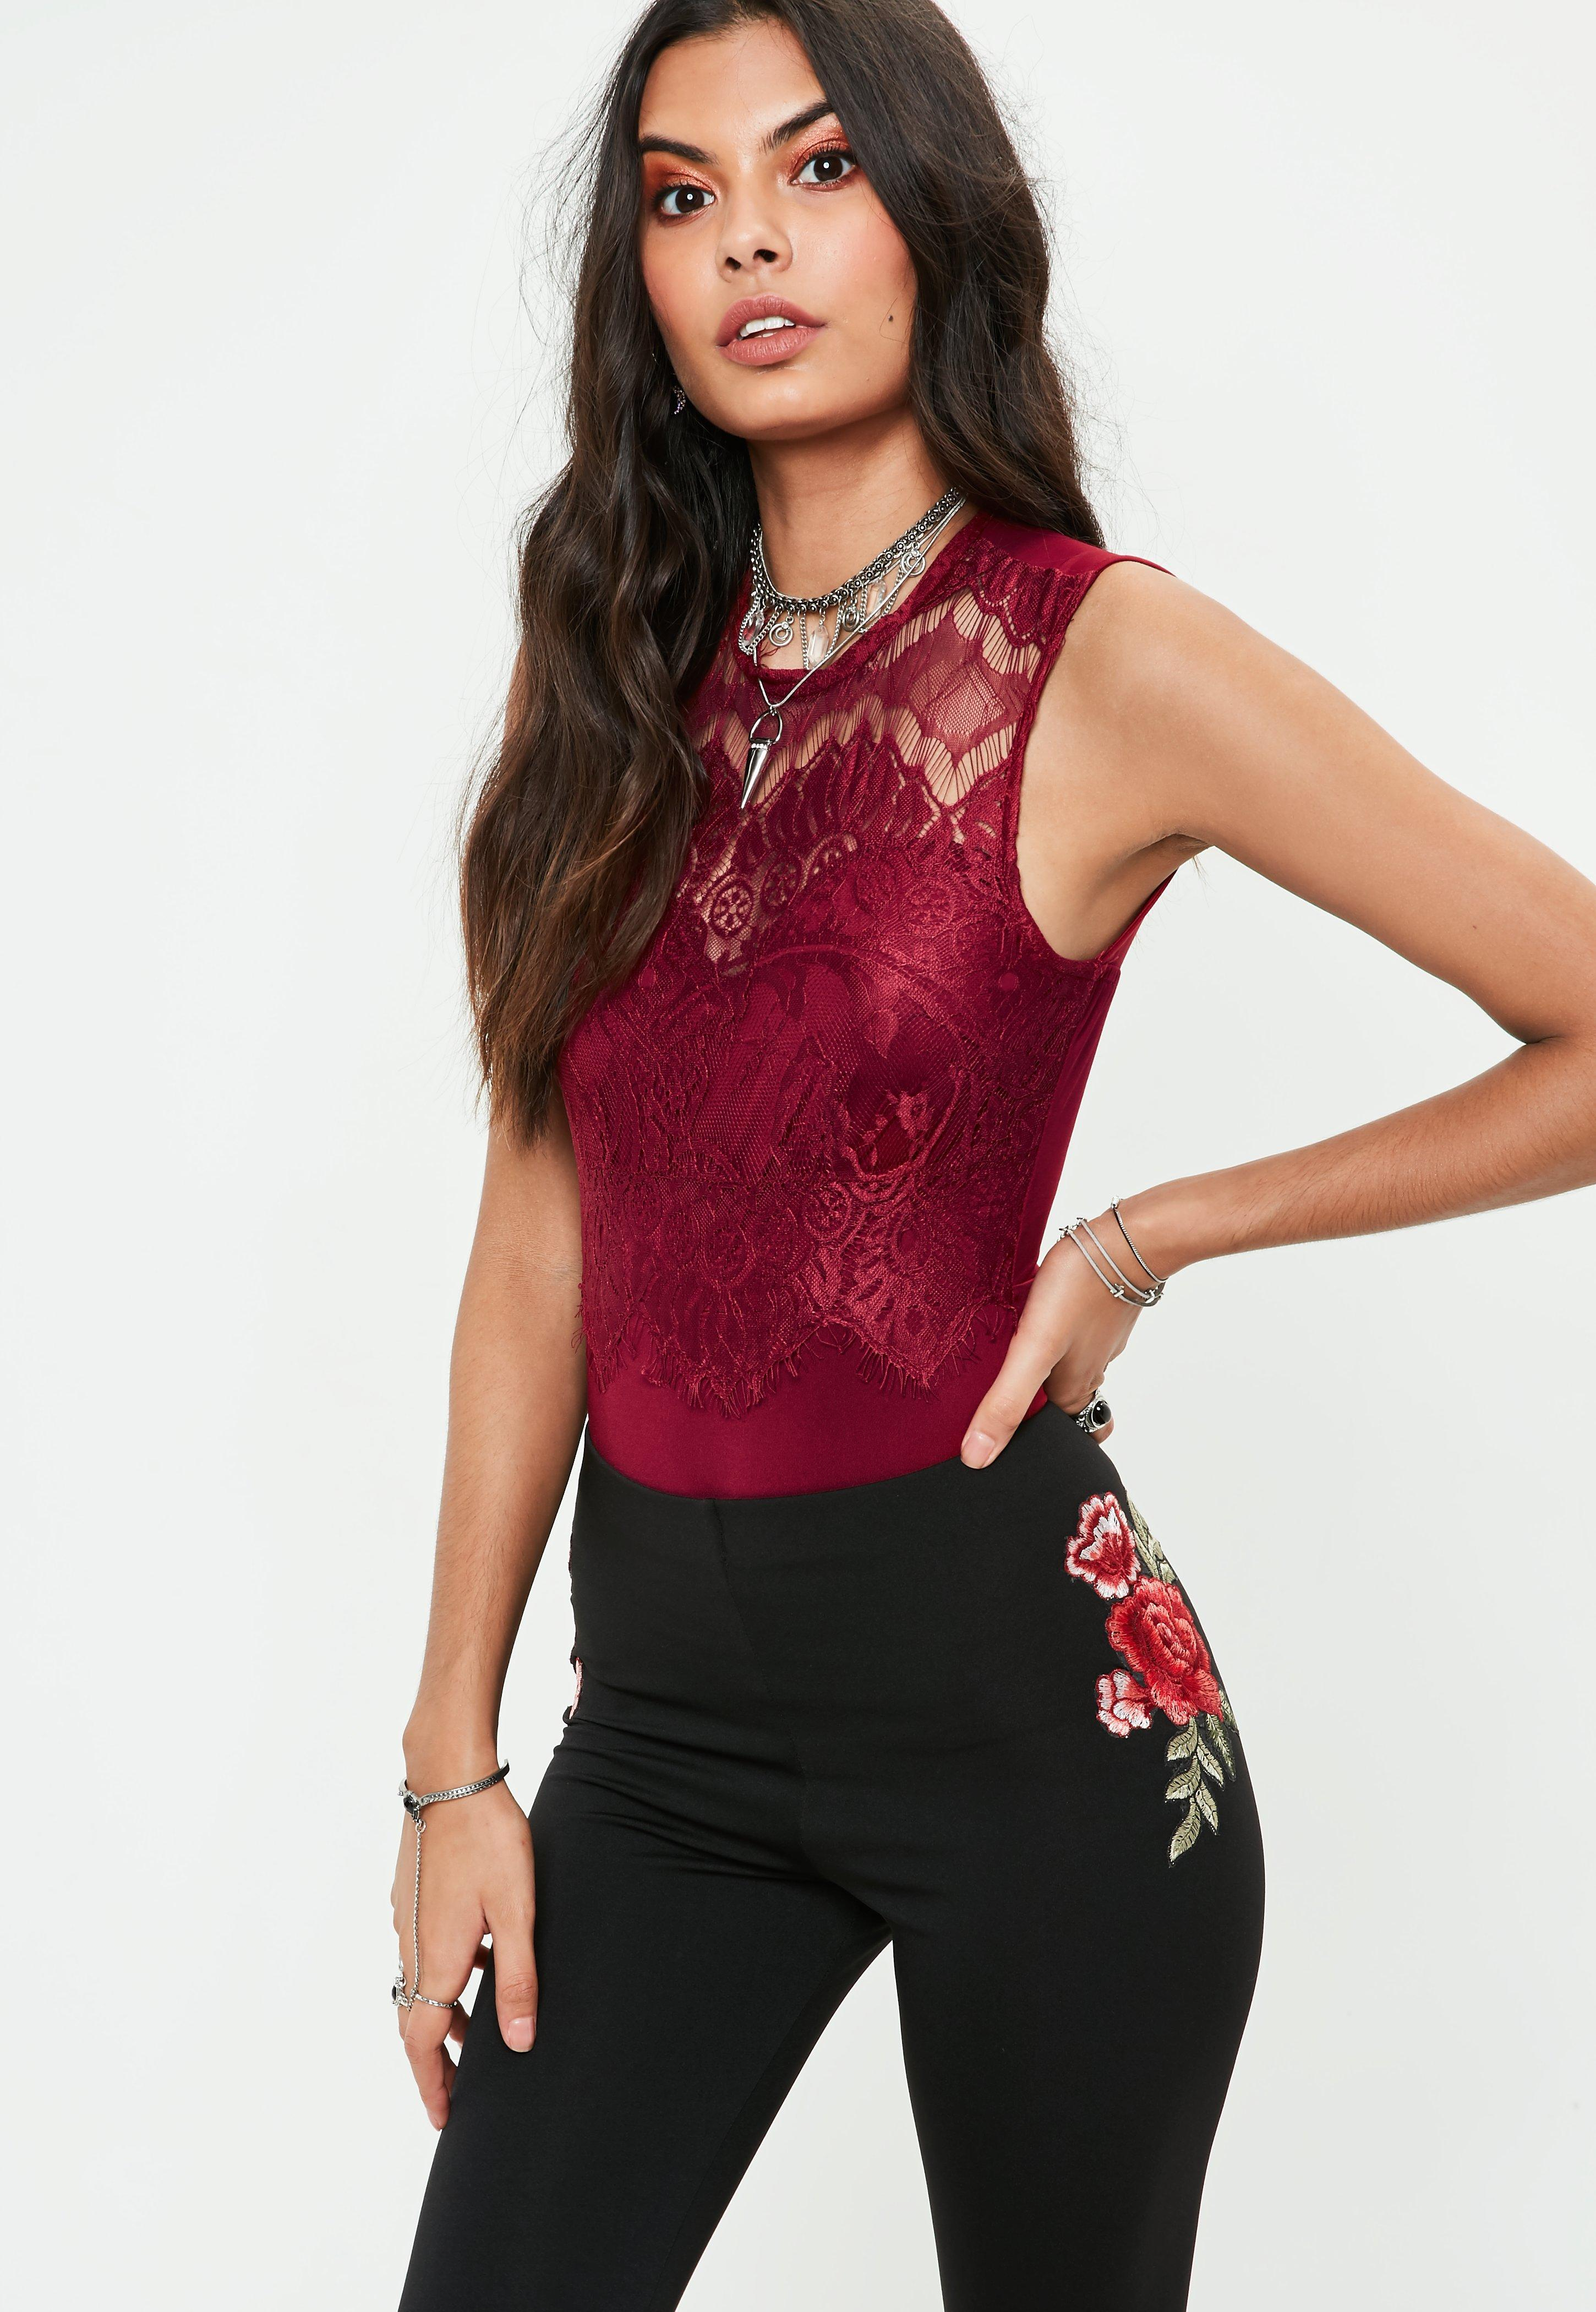 Lyst - Missguided Burgundy Lace Bodysuit in Red